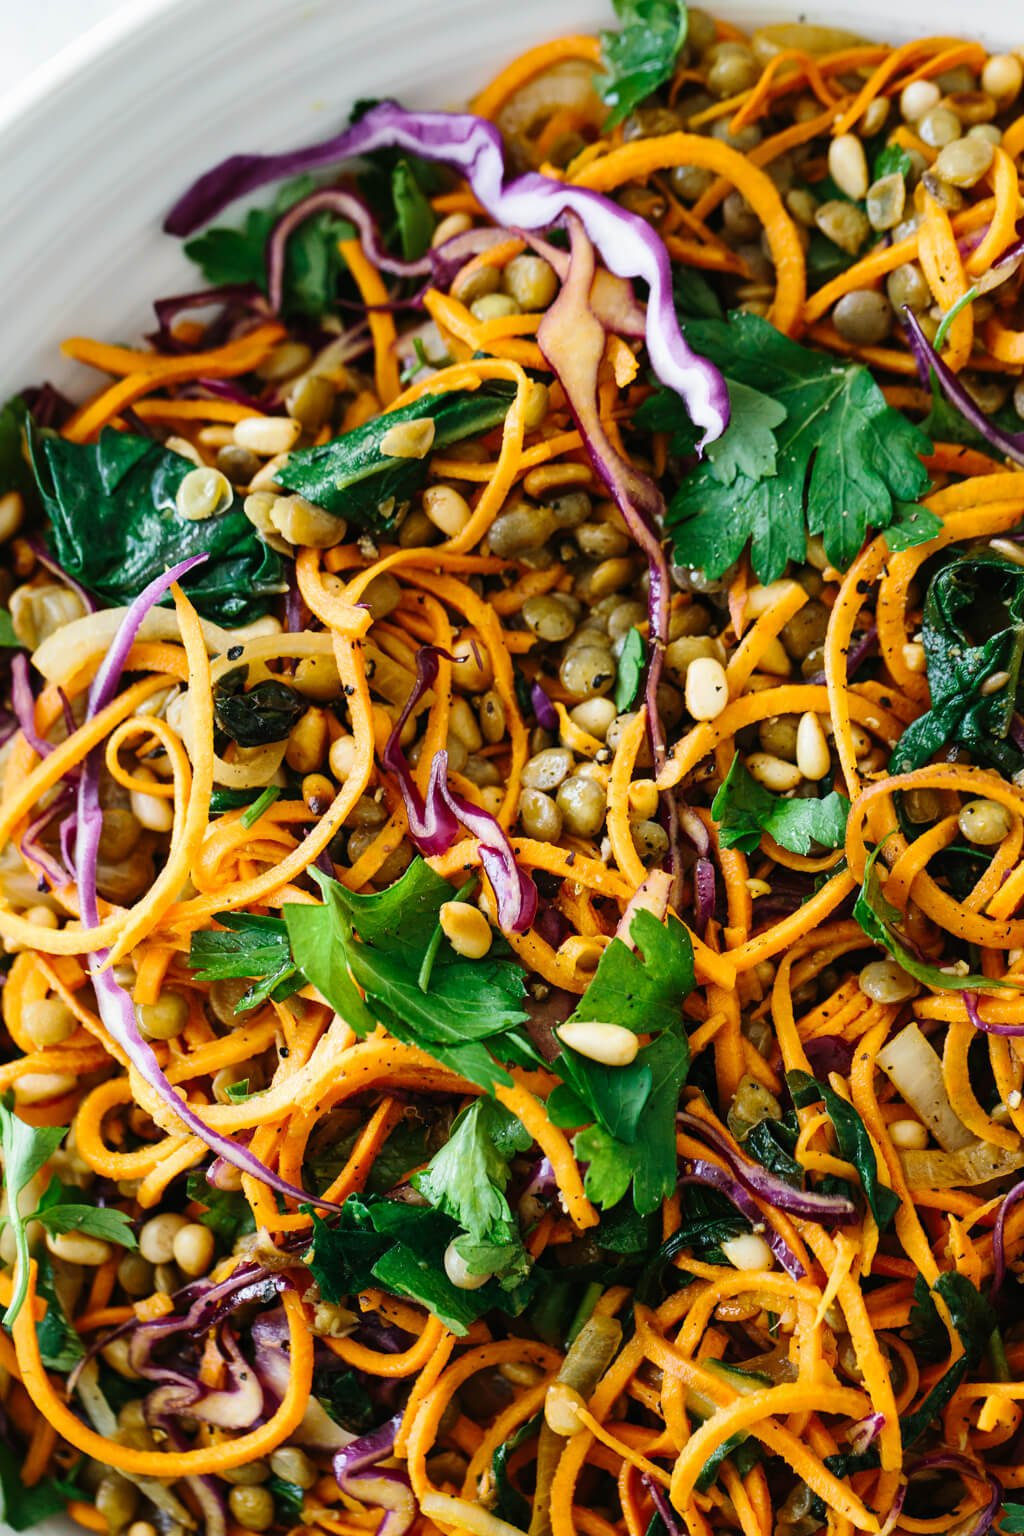 Sweet potato noodles salad is a combination of spiralized sweet potato noodles, cabbage, lentils, sautéed onions and Swiss chard. It's topped off with fresh herbs, toasted pine nuts and a zesty Dijon vinaigrette.